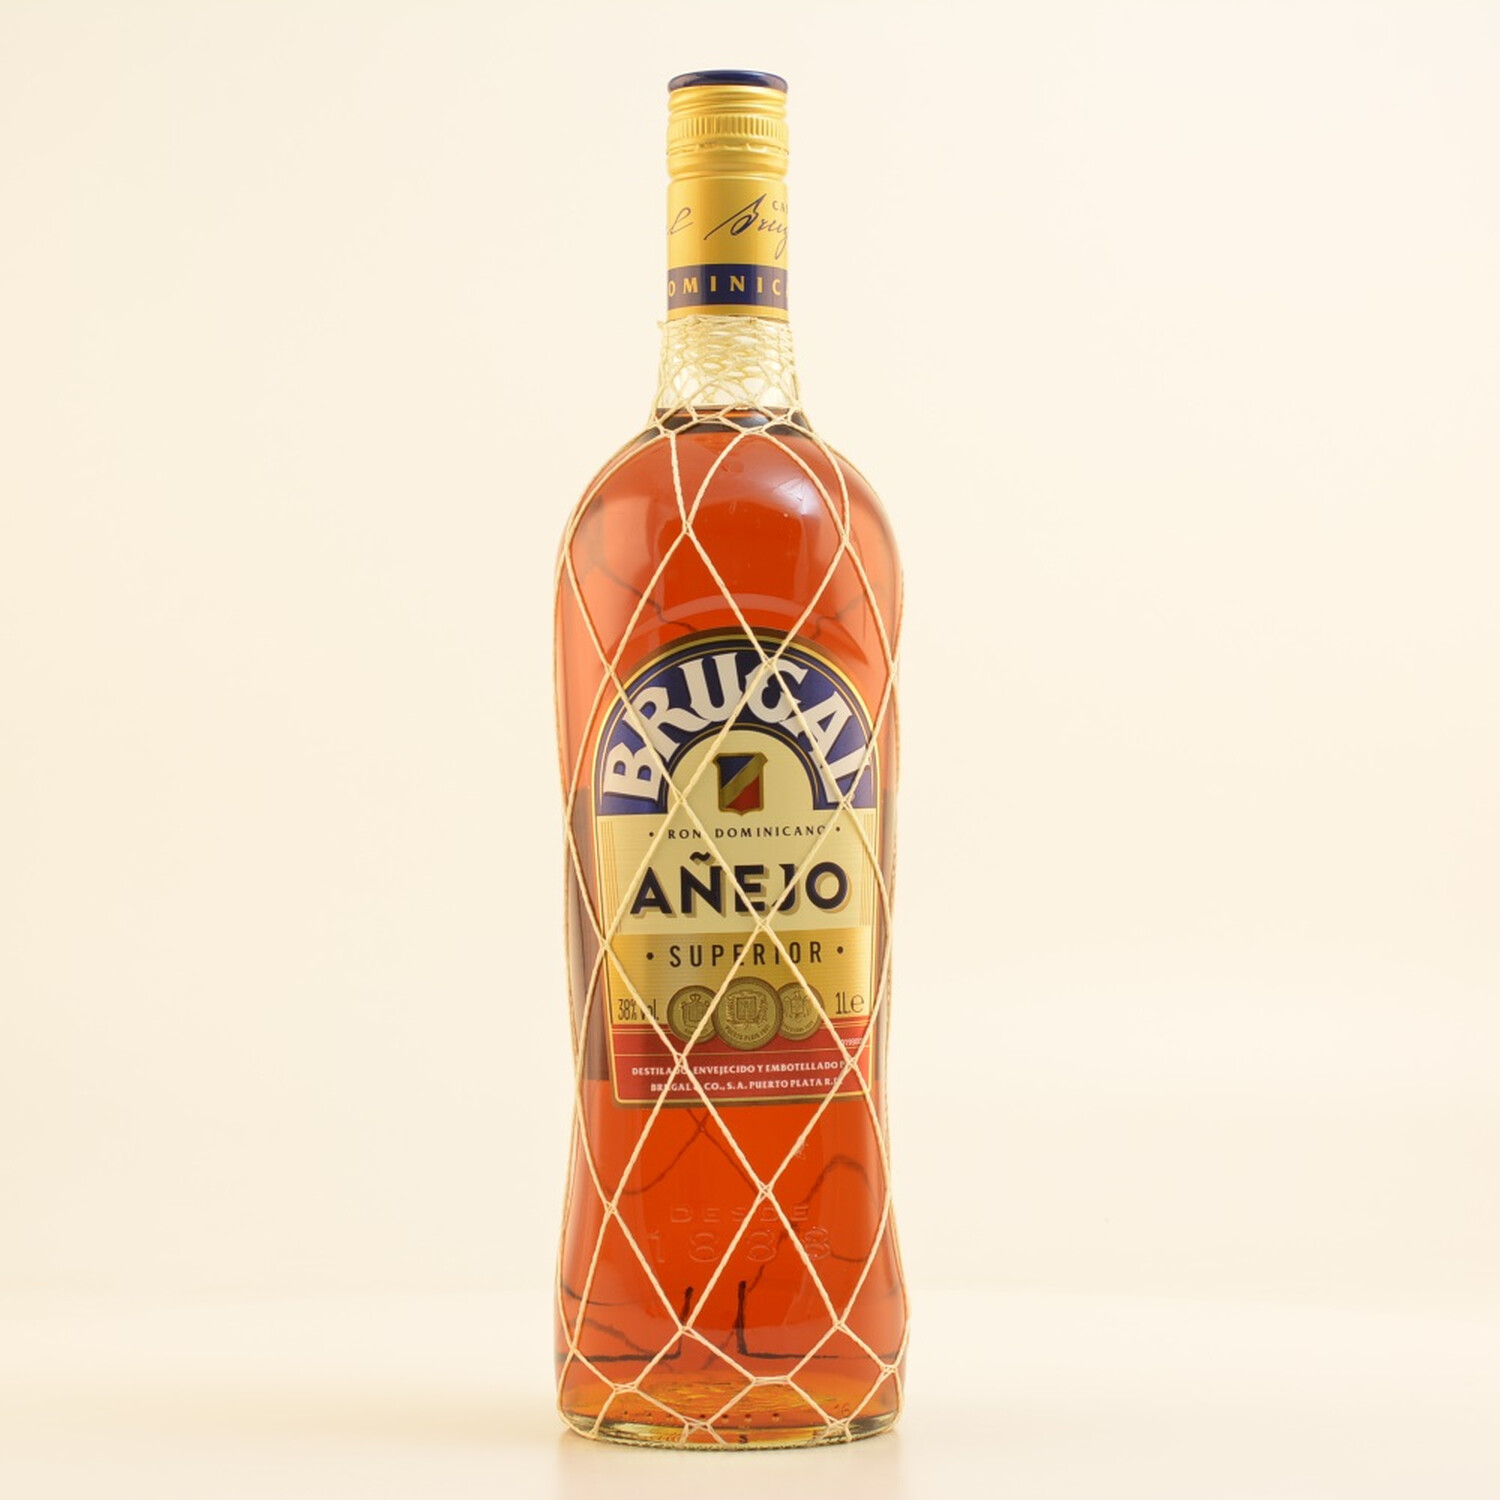 Brugal Ron Anejo Superior 38% 1,0l + Goldberg Intense Ginger (Alkohlfrei) 8 x 0,15l